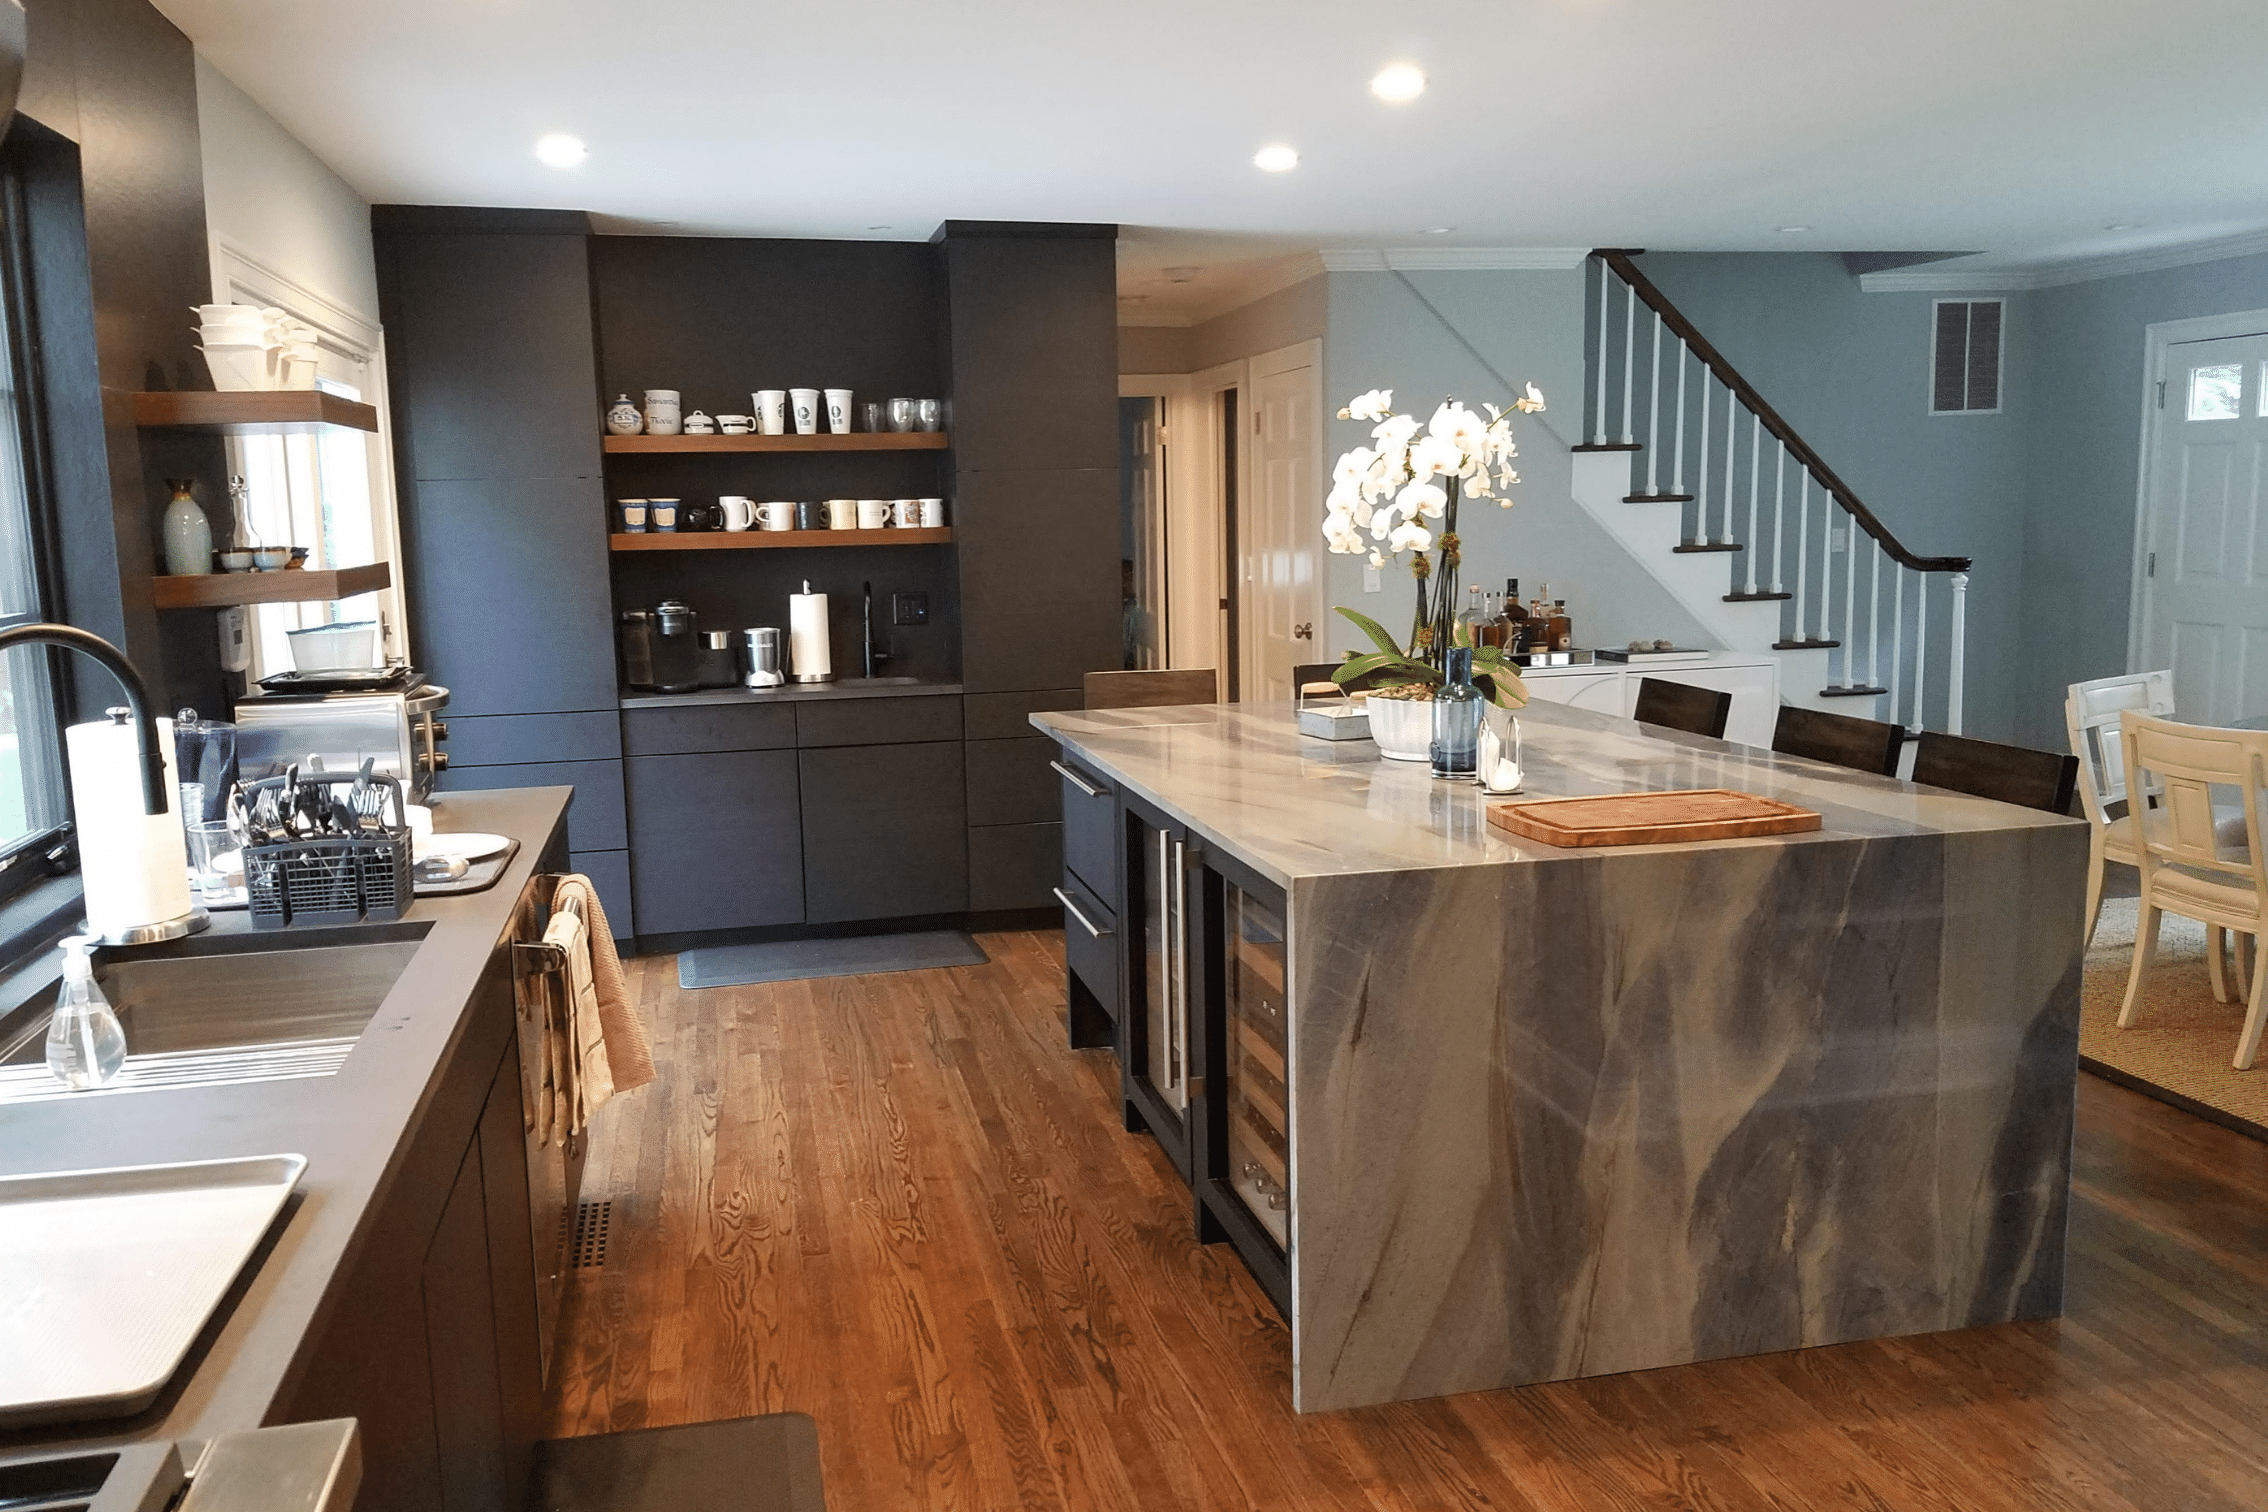 Flow Area Between Kitchen and Living Space